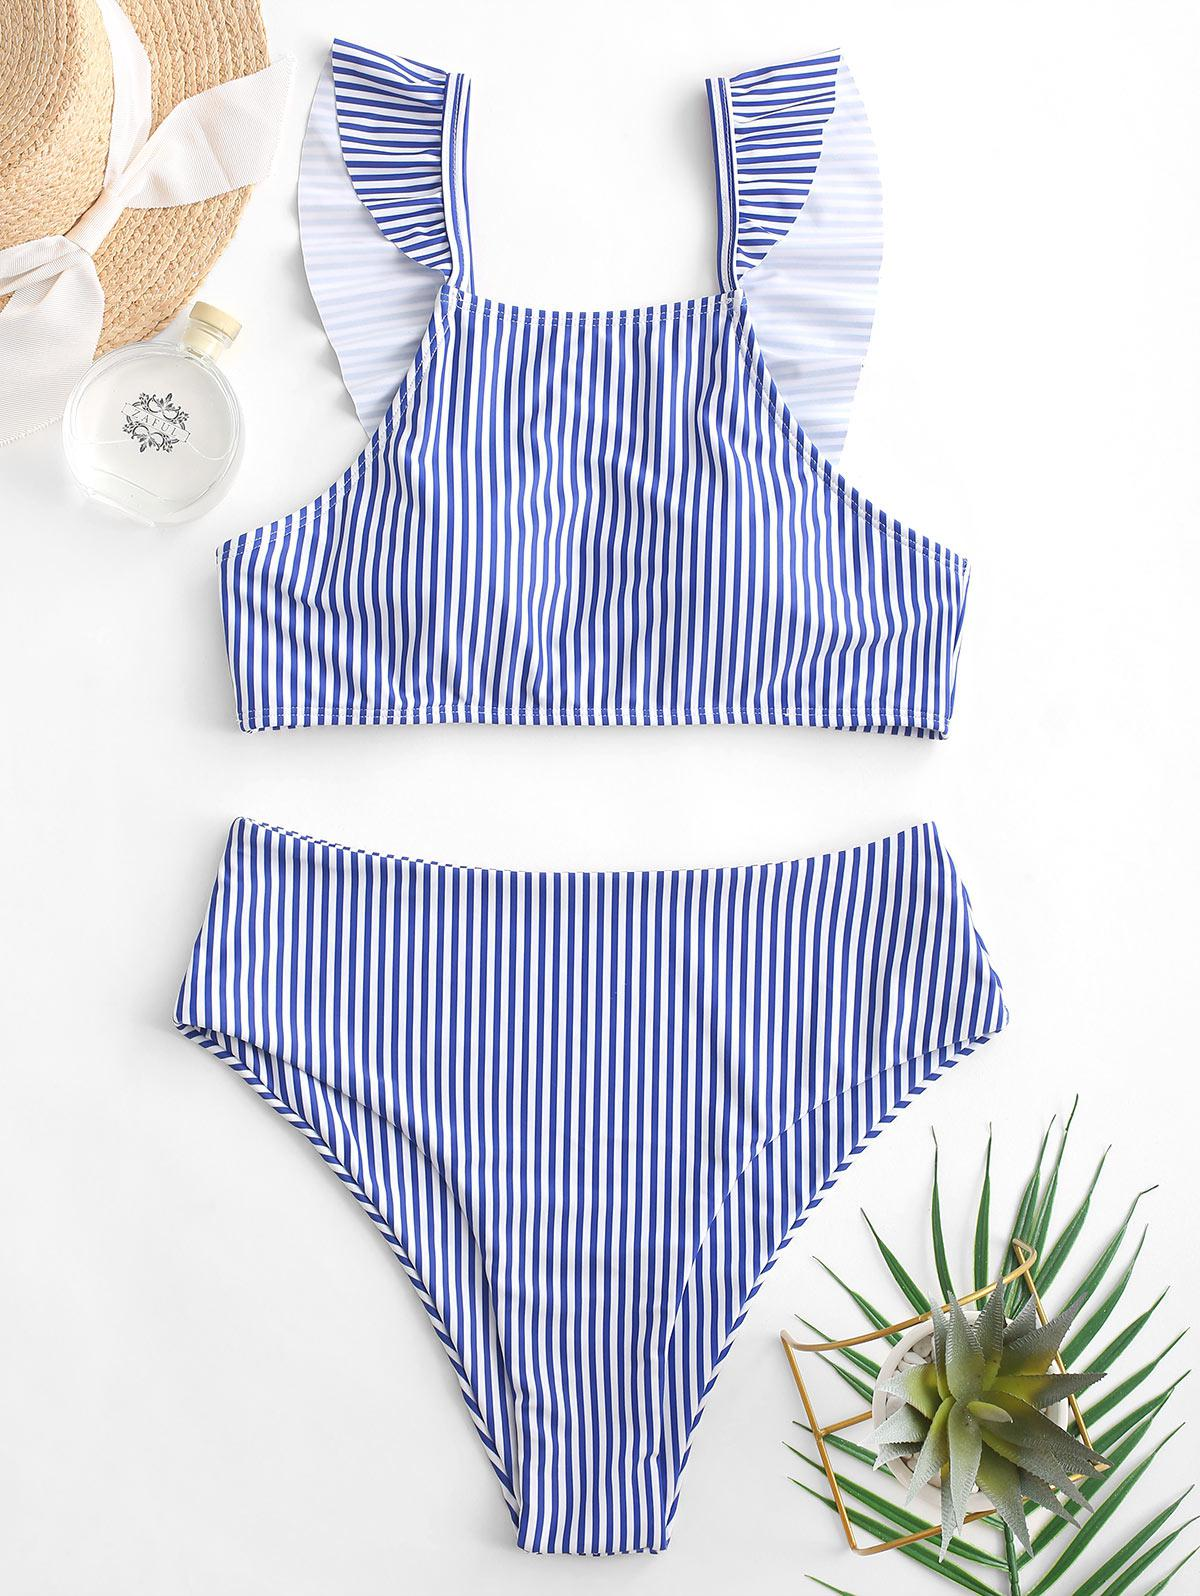 ZAFUL Ruffle Stripe Tankini Swimsuit, Blueberry blue